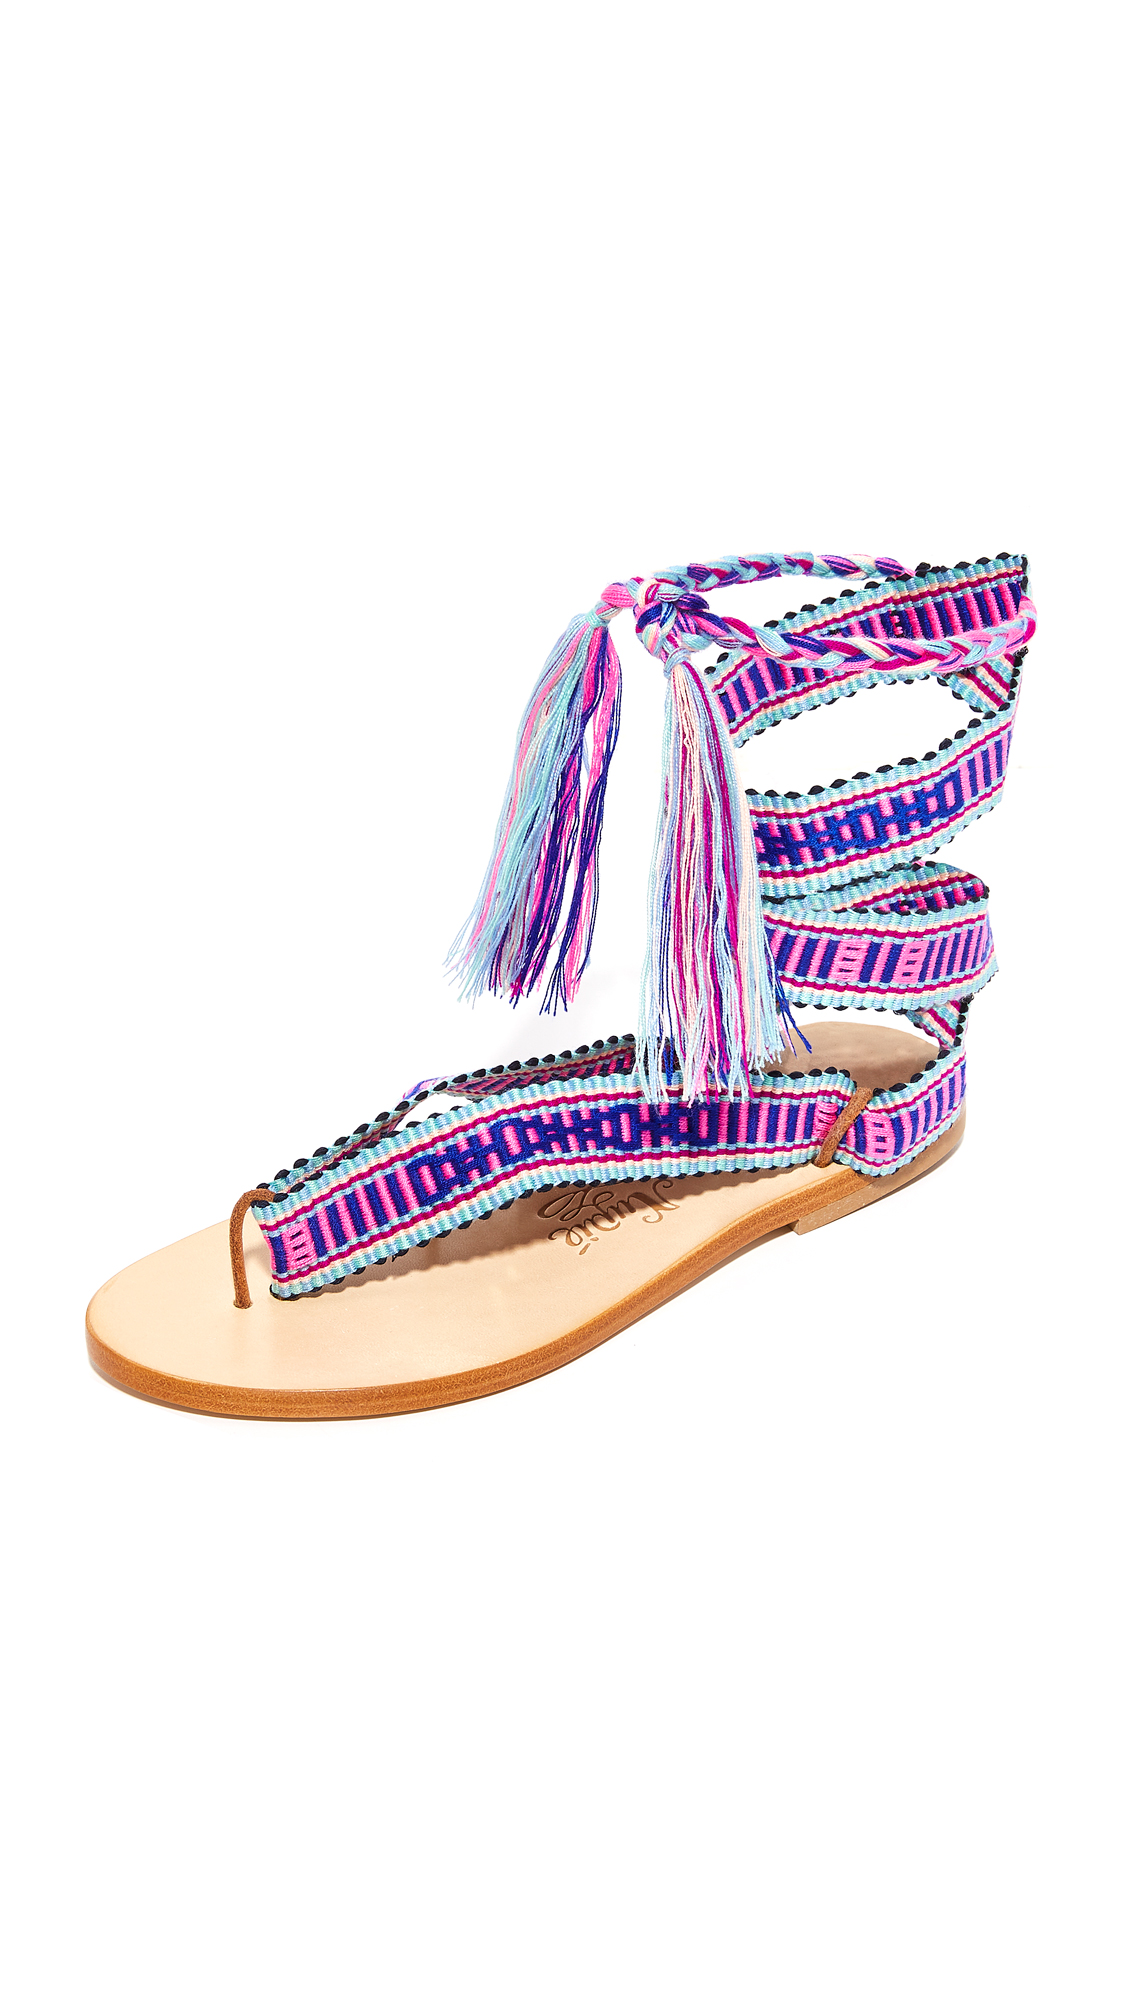 Nupie Nupie Wrap Sandals - Karen/Natural